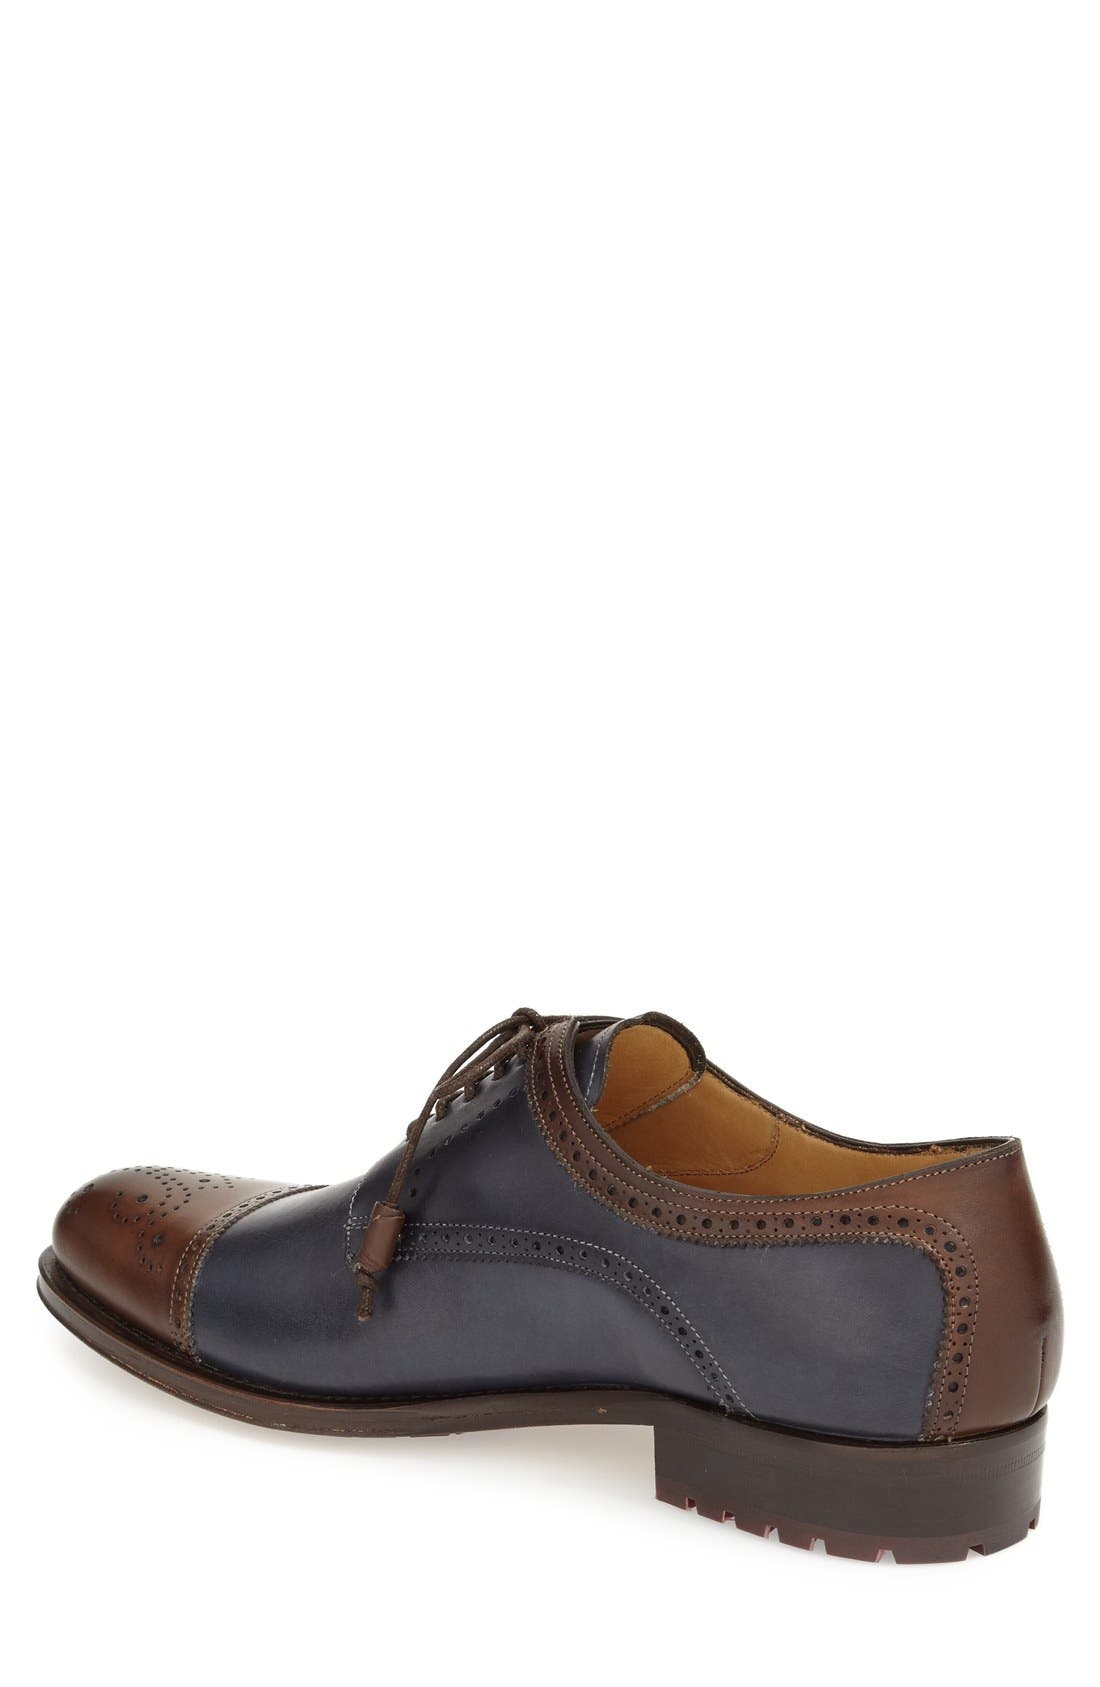 Alternate Image 2  - Mezlan 'Carlino' Cap Toe Oxford (Men)